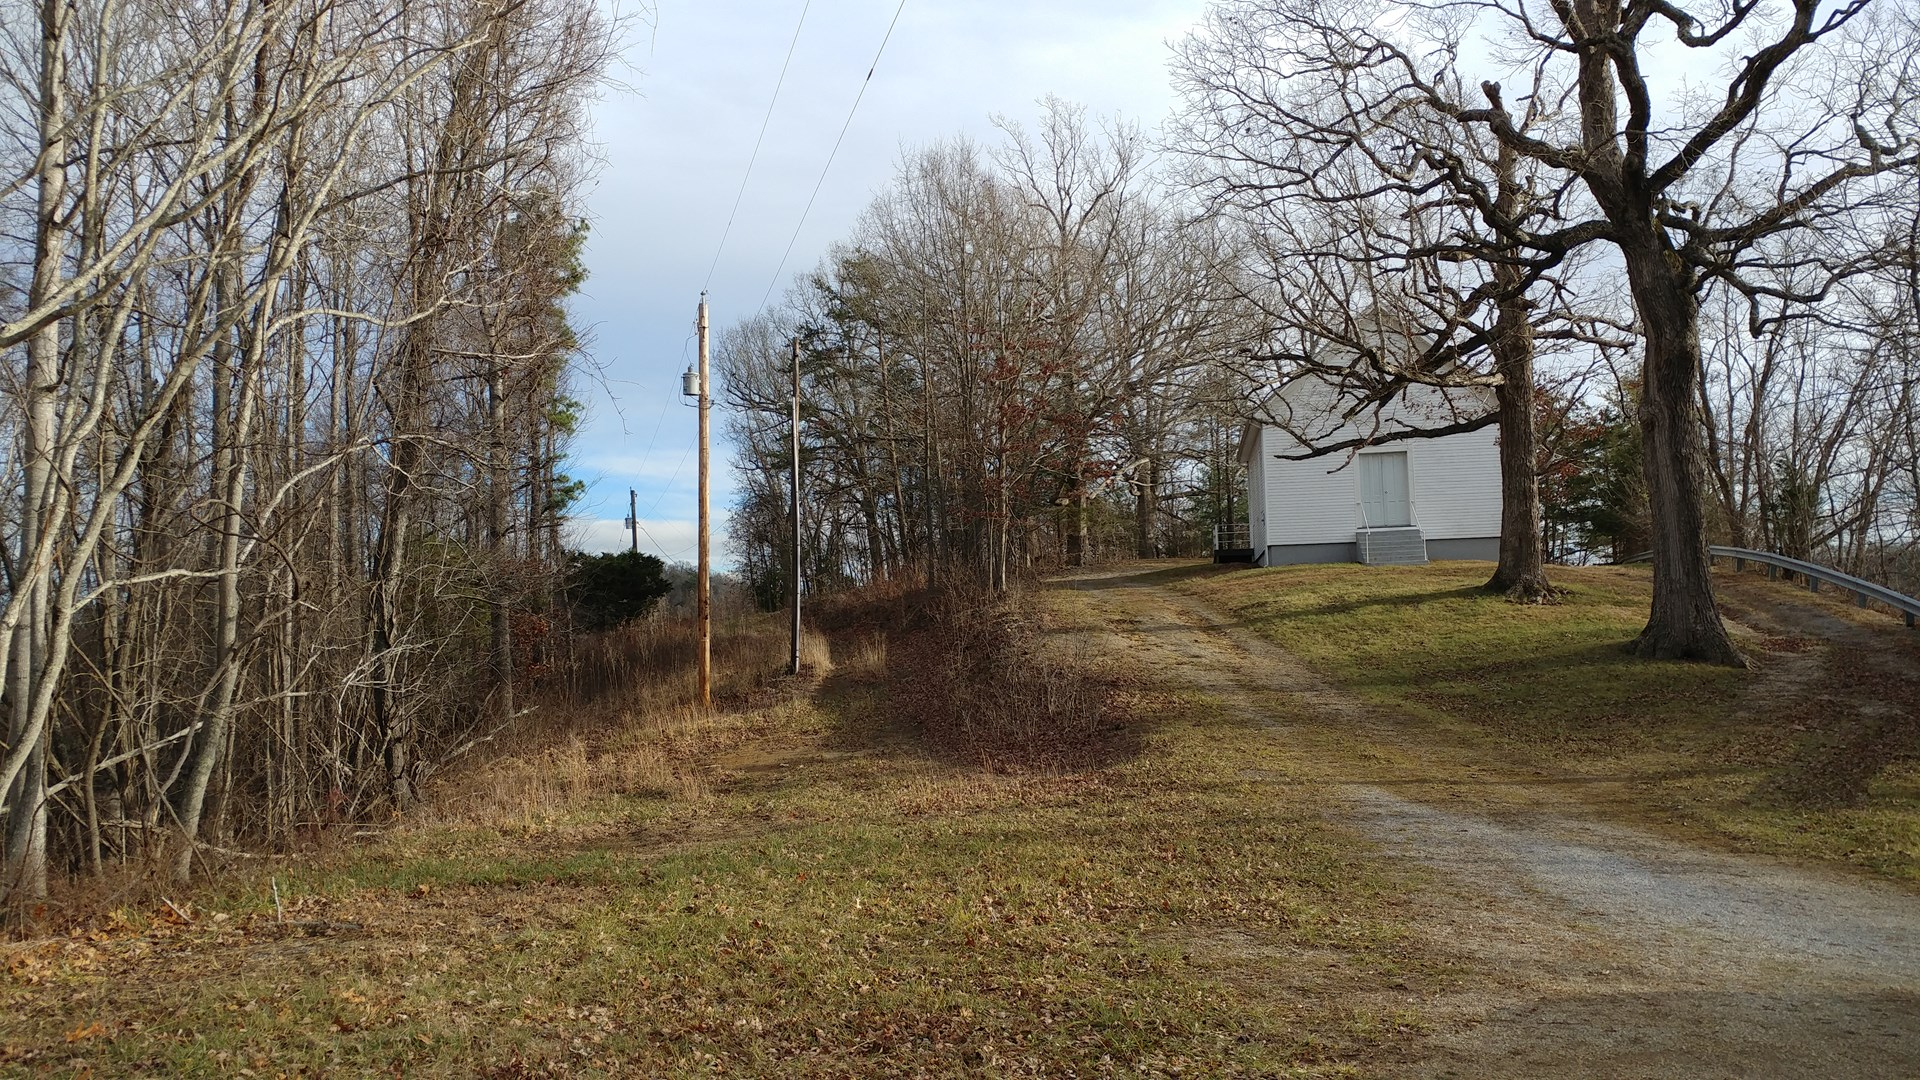 Land for Sale in Shawsville VA with a Church Building